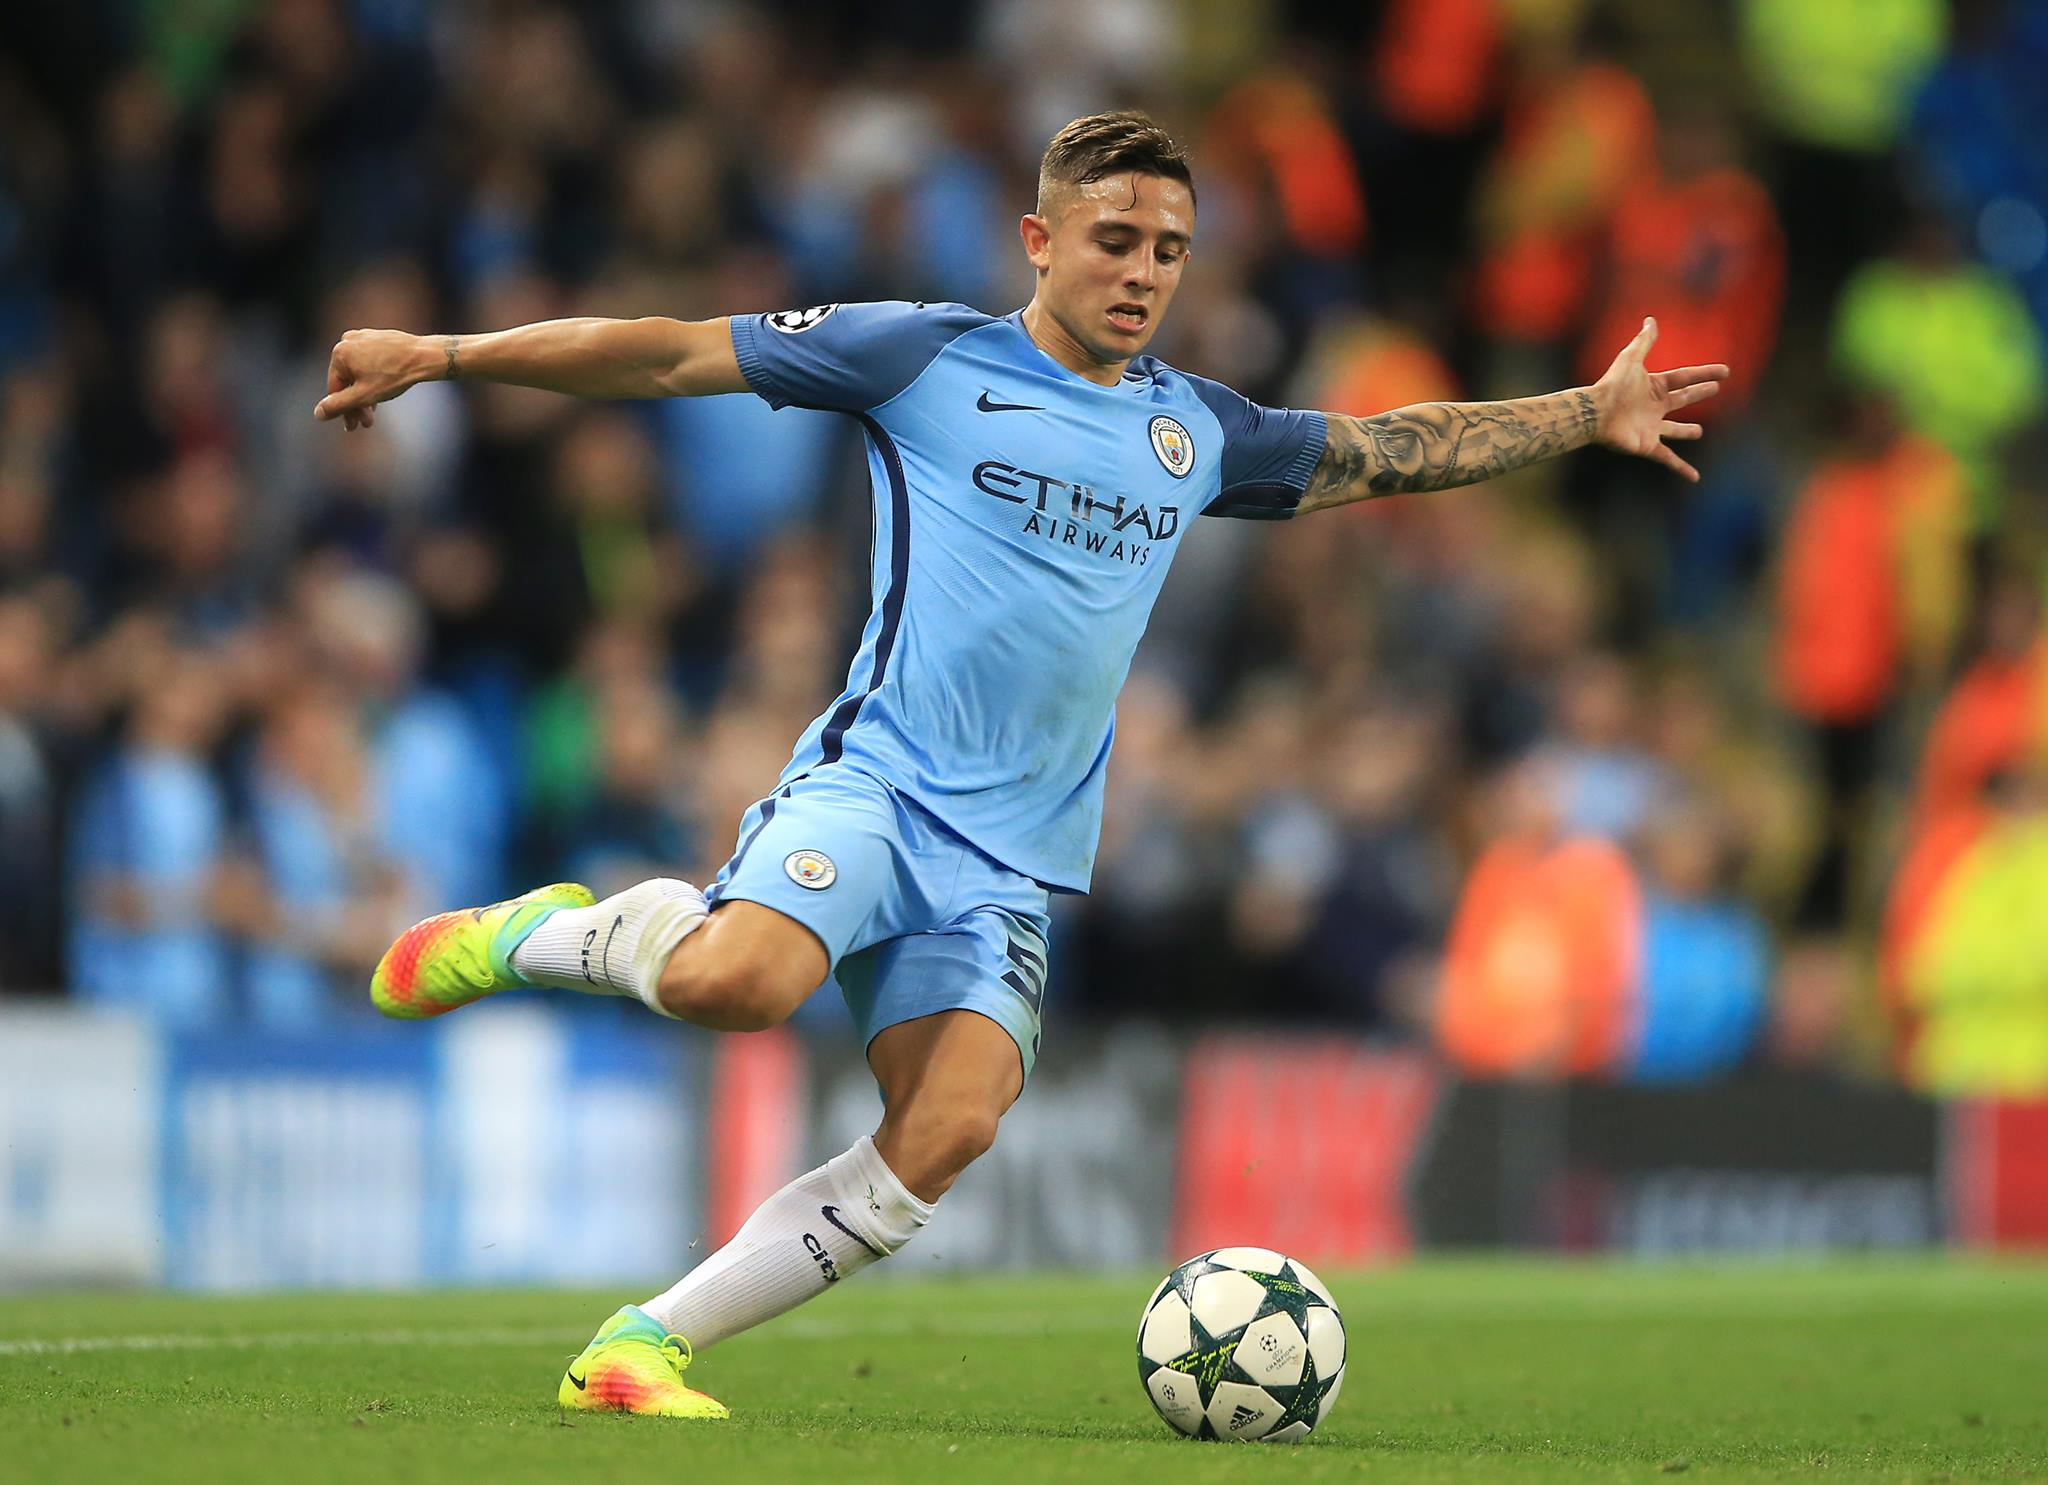 Want to know how to stop Leo Messi? Just ask Pablo Maffeo